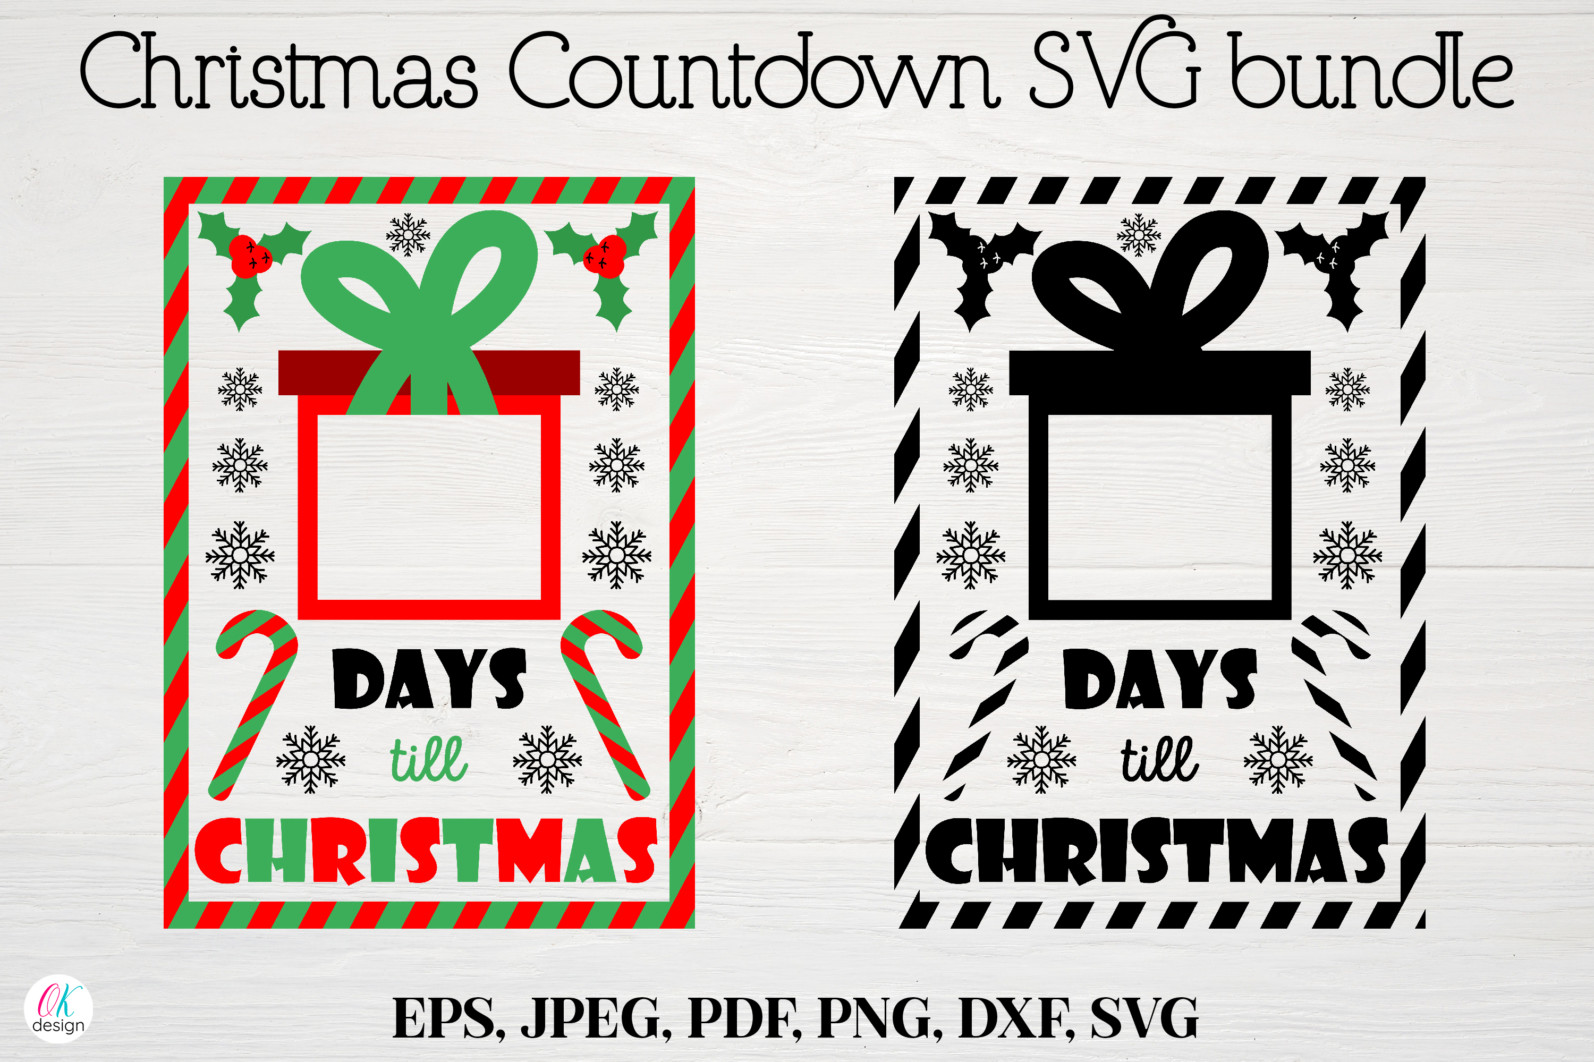 Christmas bundle Vol. 1. Christmas stickers. Christmas SVG bundle. - 4 Christmas svg Christmas countdown svg Christmas count down Christmas sign svg days until Christmas svg scaled -